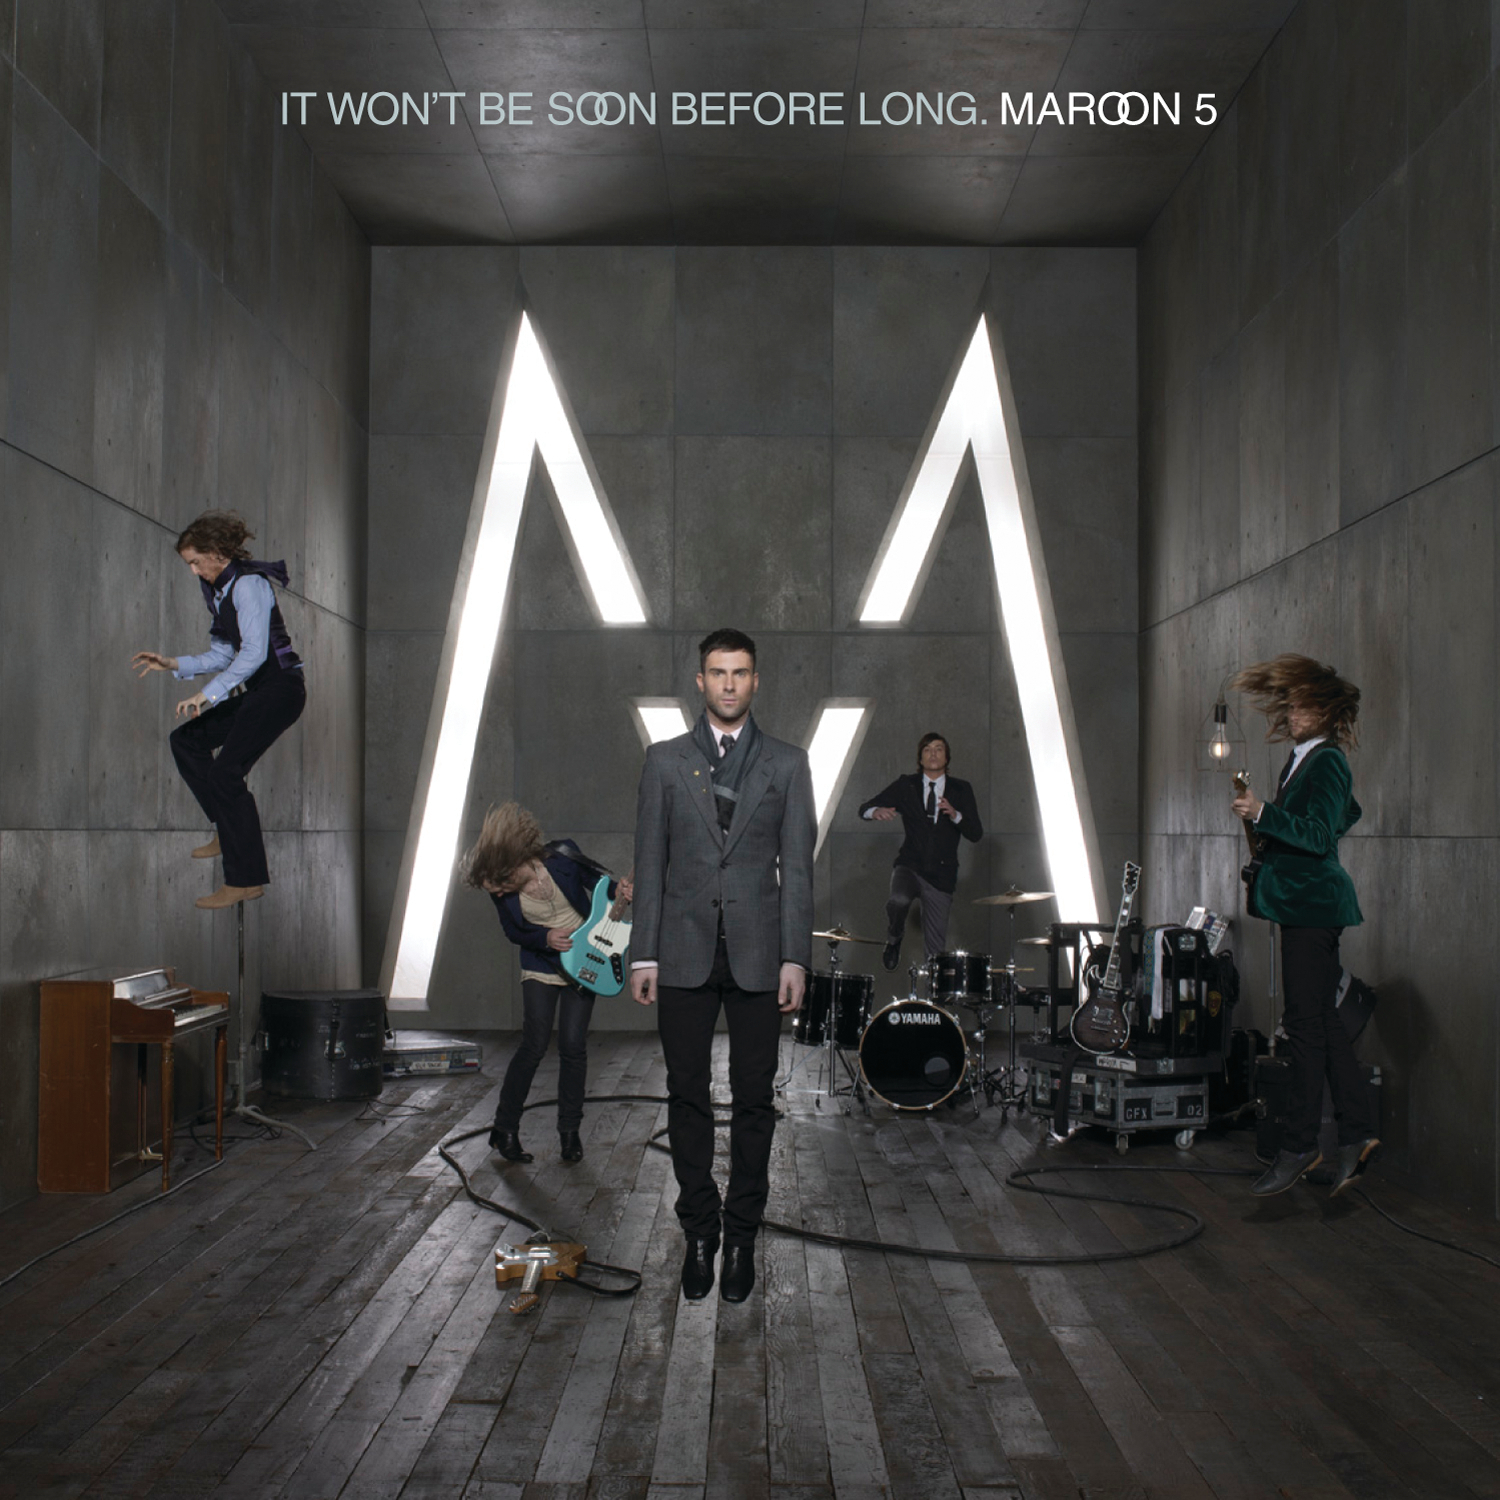 it-wont-be-soon-maroon-5-album-art.jpg